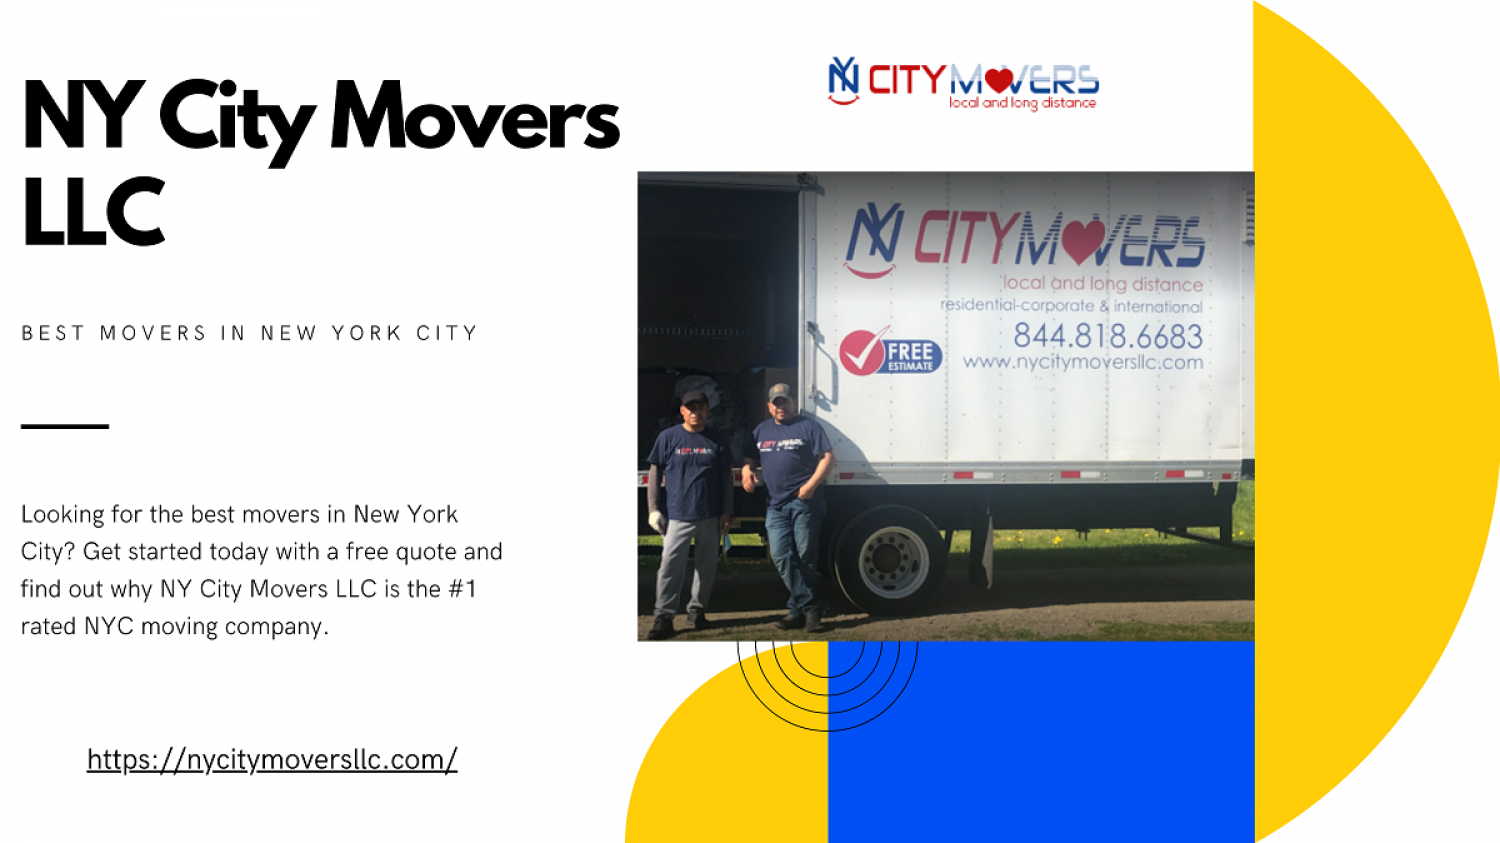 Best NYC Movers Company Infographic